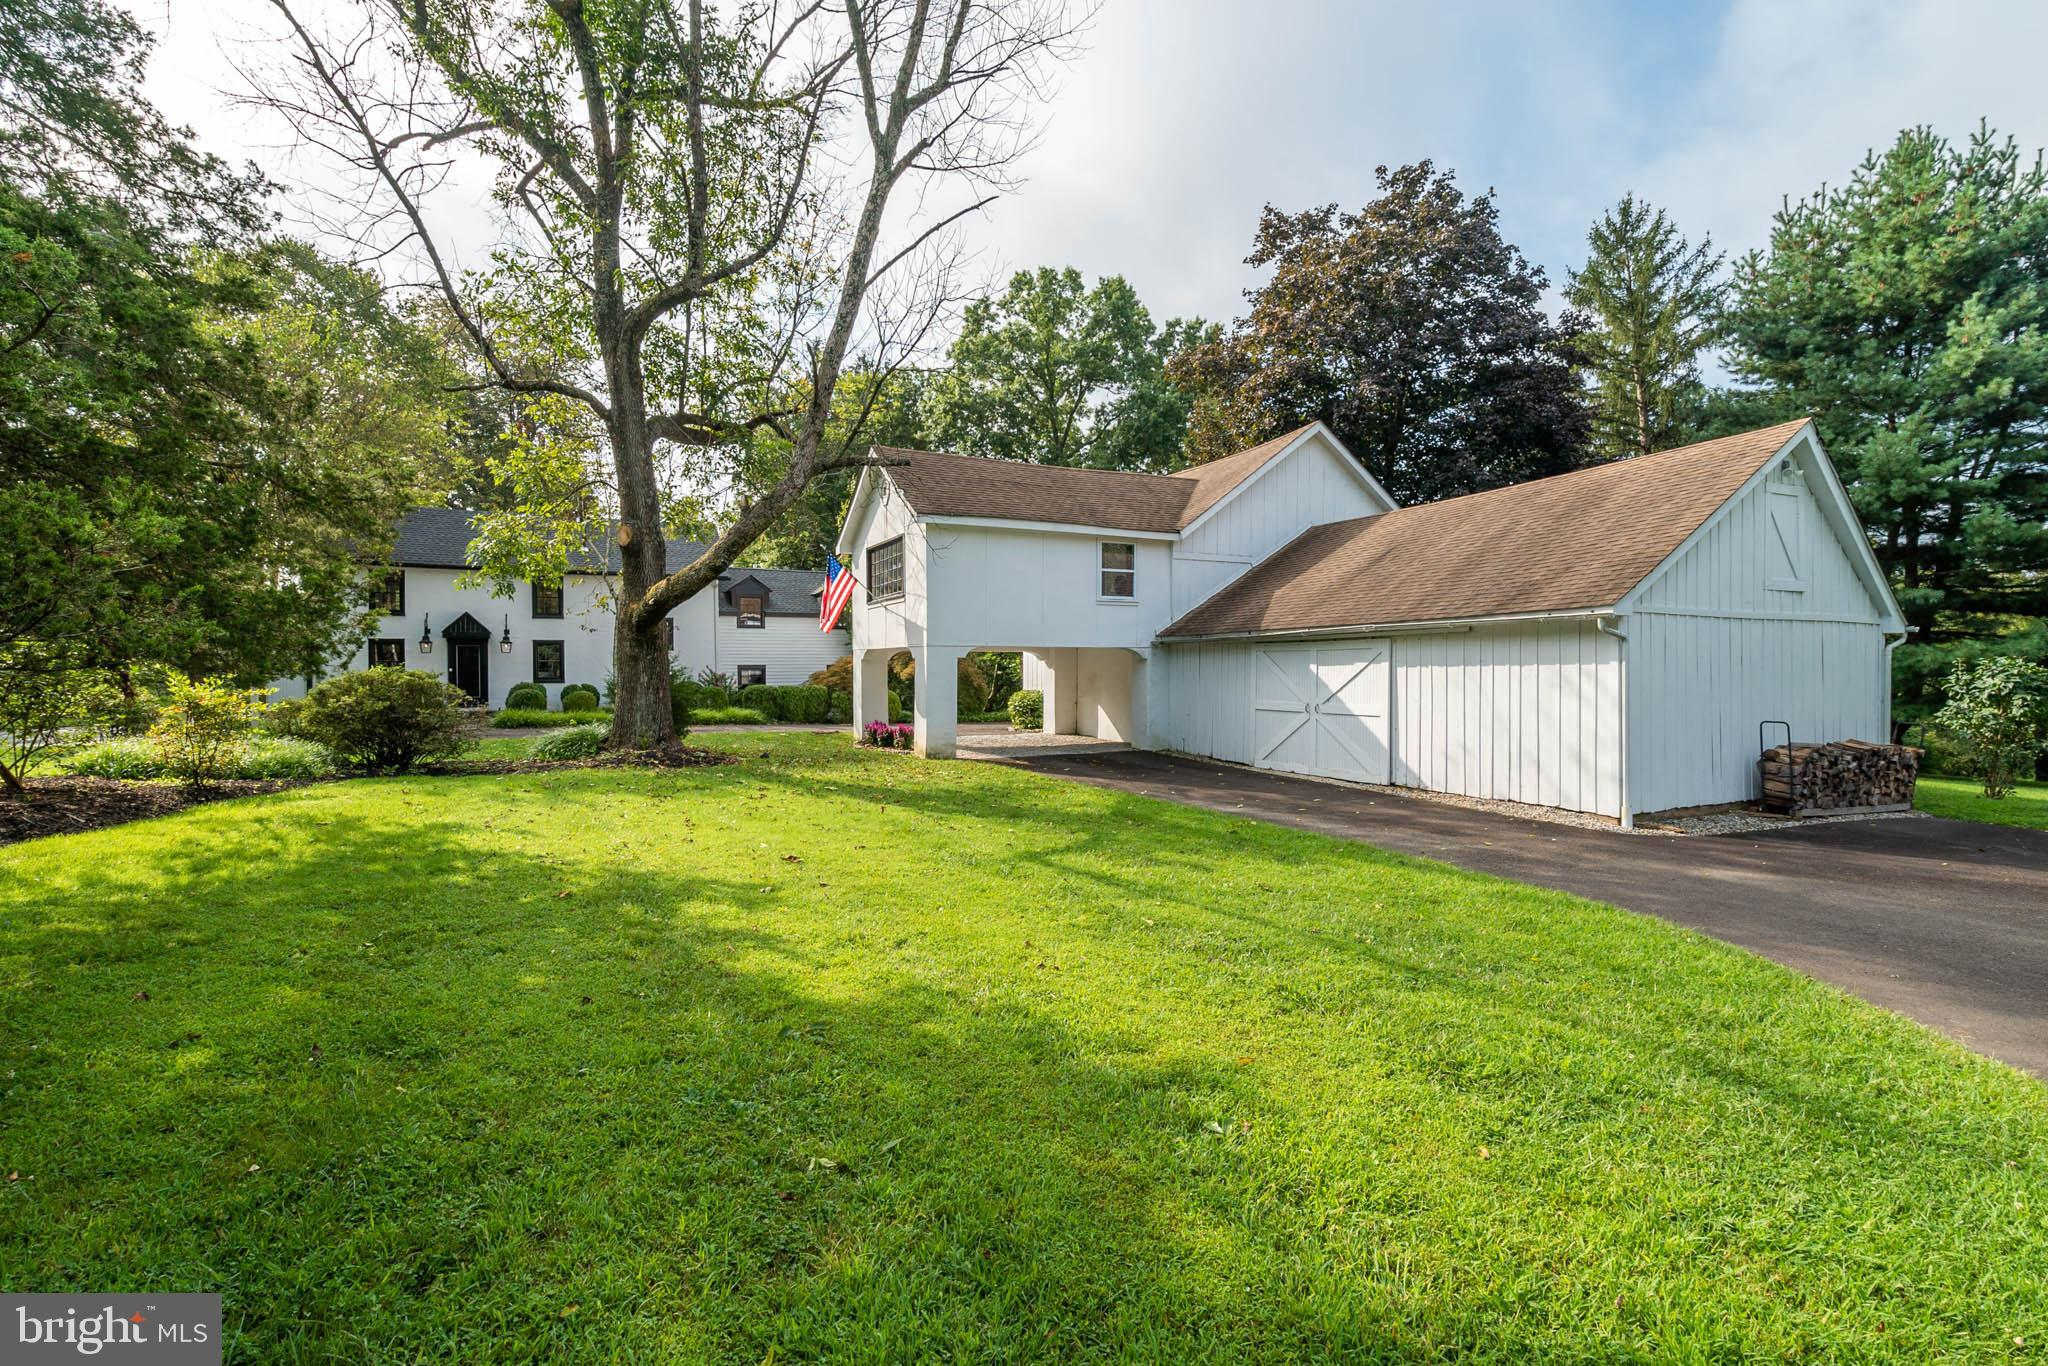 1610 SUGAR BOTTOM ROAD, FURLONG, PA 18925